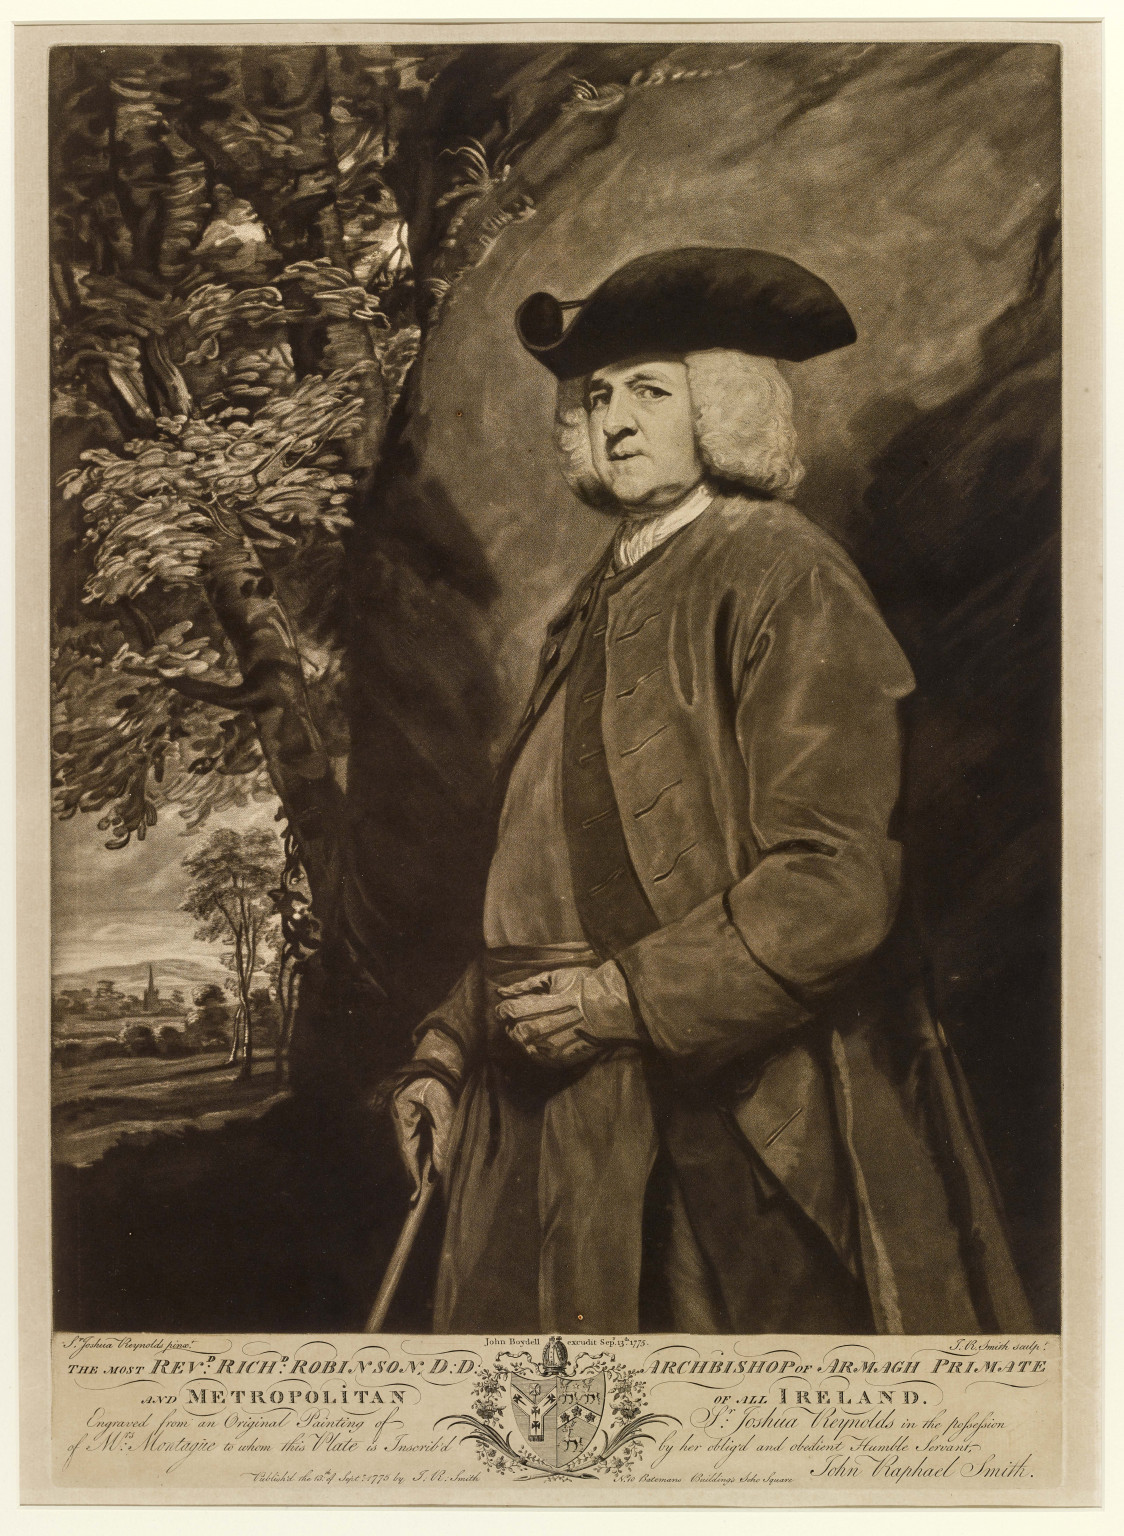 Mezzotint of The Most Revd Dr Richard Robinson, engraved by John Raphael Smith, after Sir Joshua Reynolds, and published by John Boydell, 1775